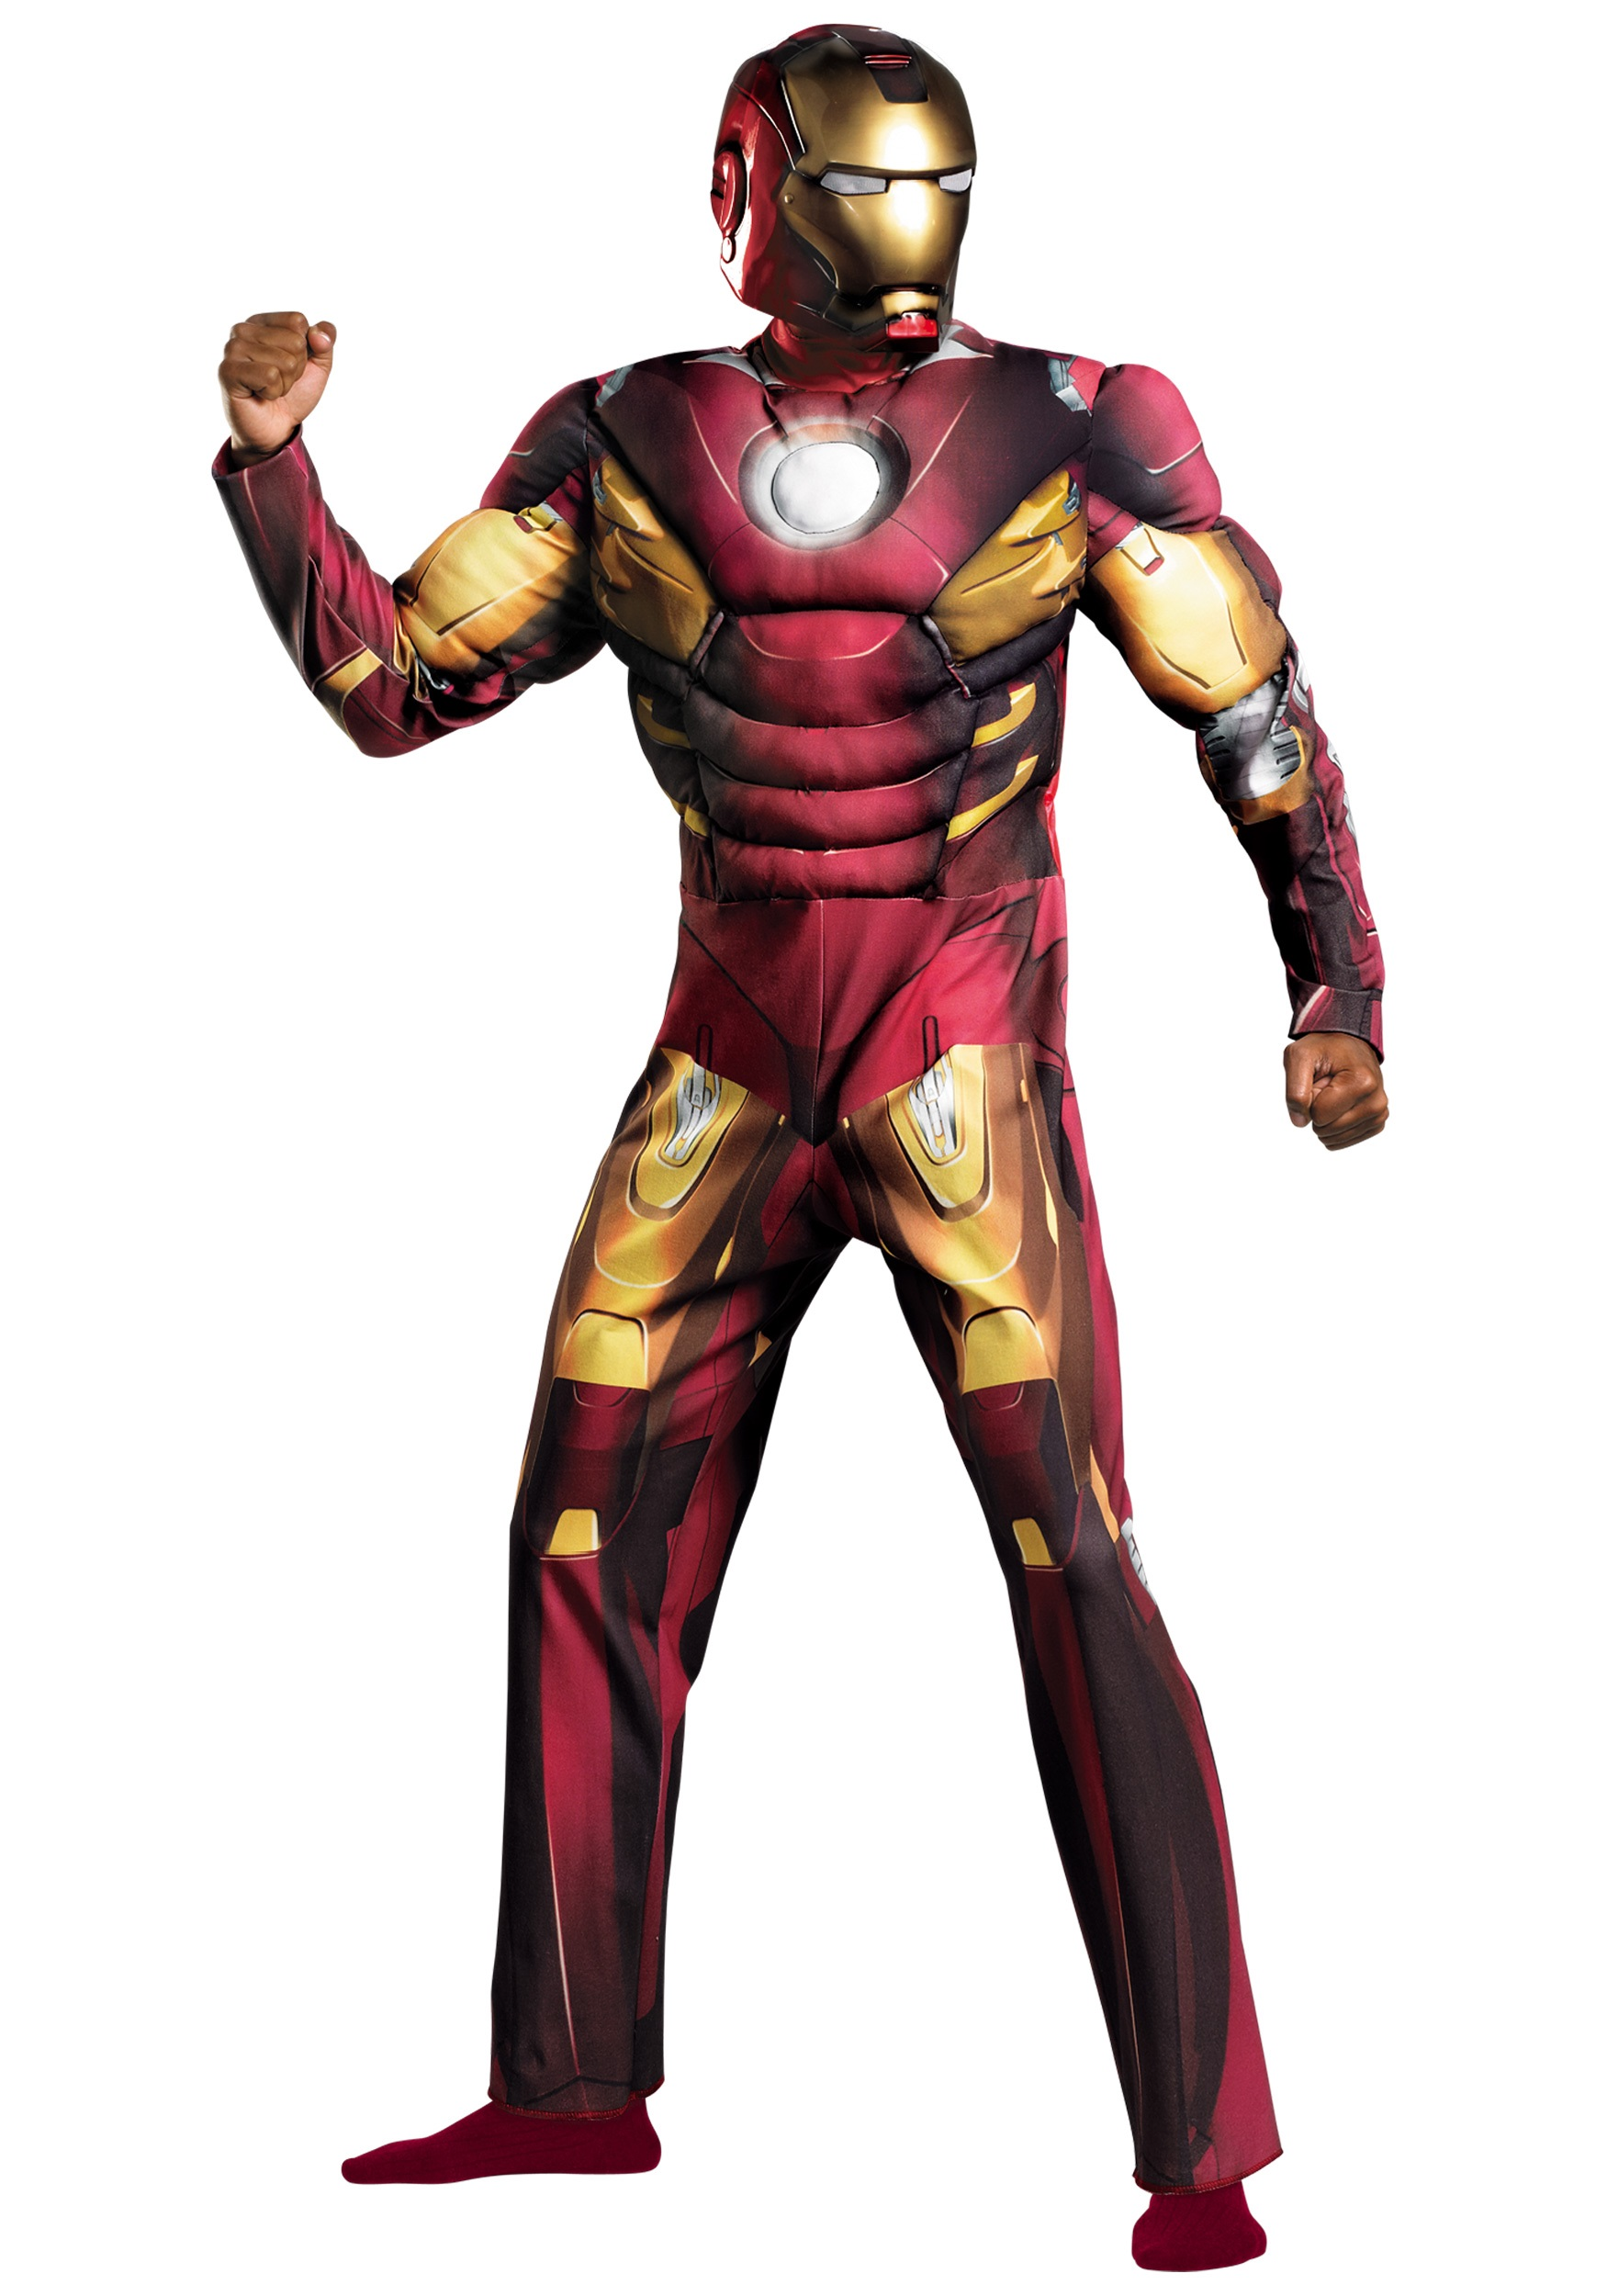 Plus Size Avengers Iron Man Muscle Costume  sc 1 st  Halloween Costumes & Plus Size Avengers Iron Man Muscle Costume - Halloween Costumes